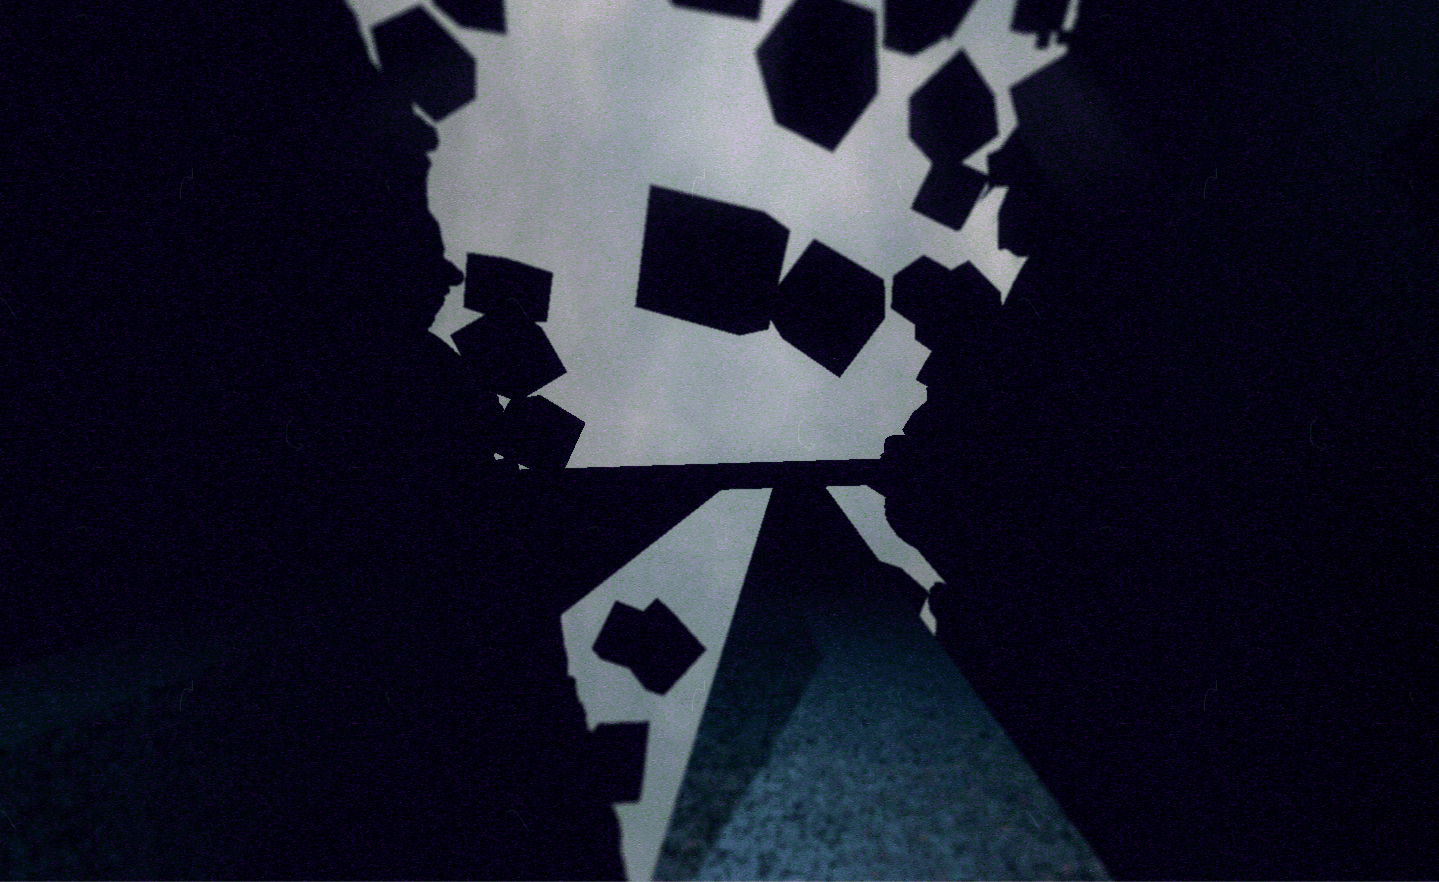 A black, stone walkway leads forward towards a fractured wall made of floating cubes, silhouetted against a sky at dawn